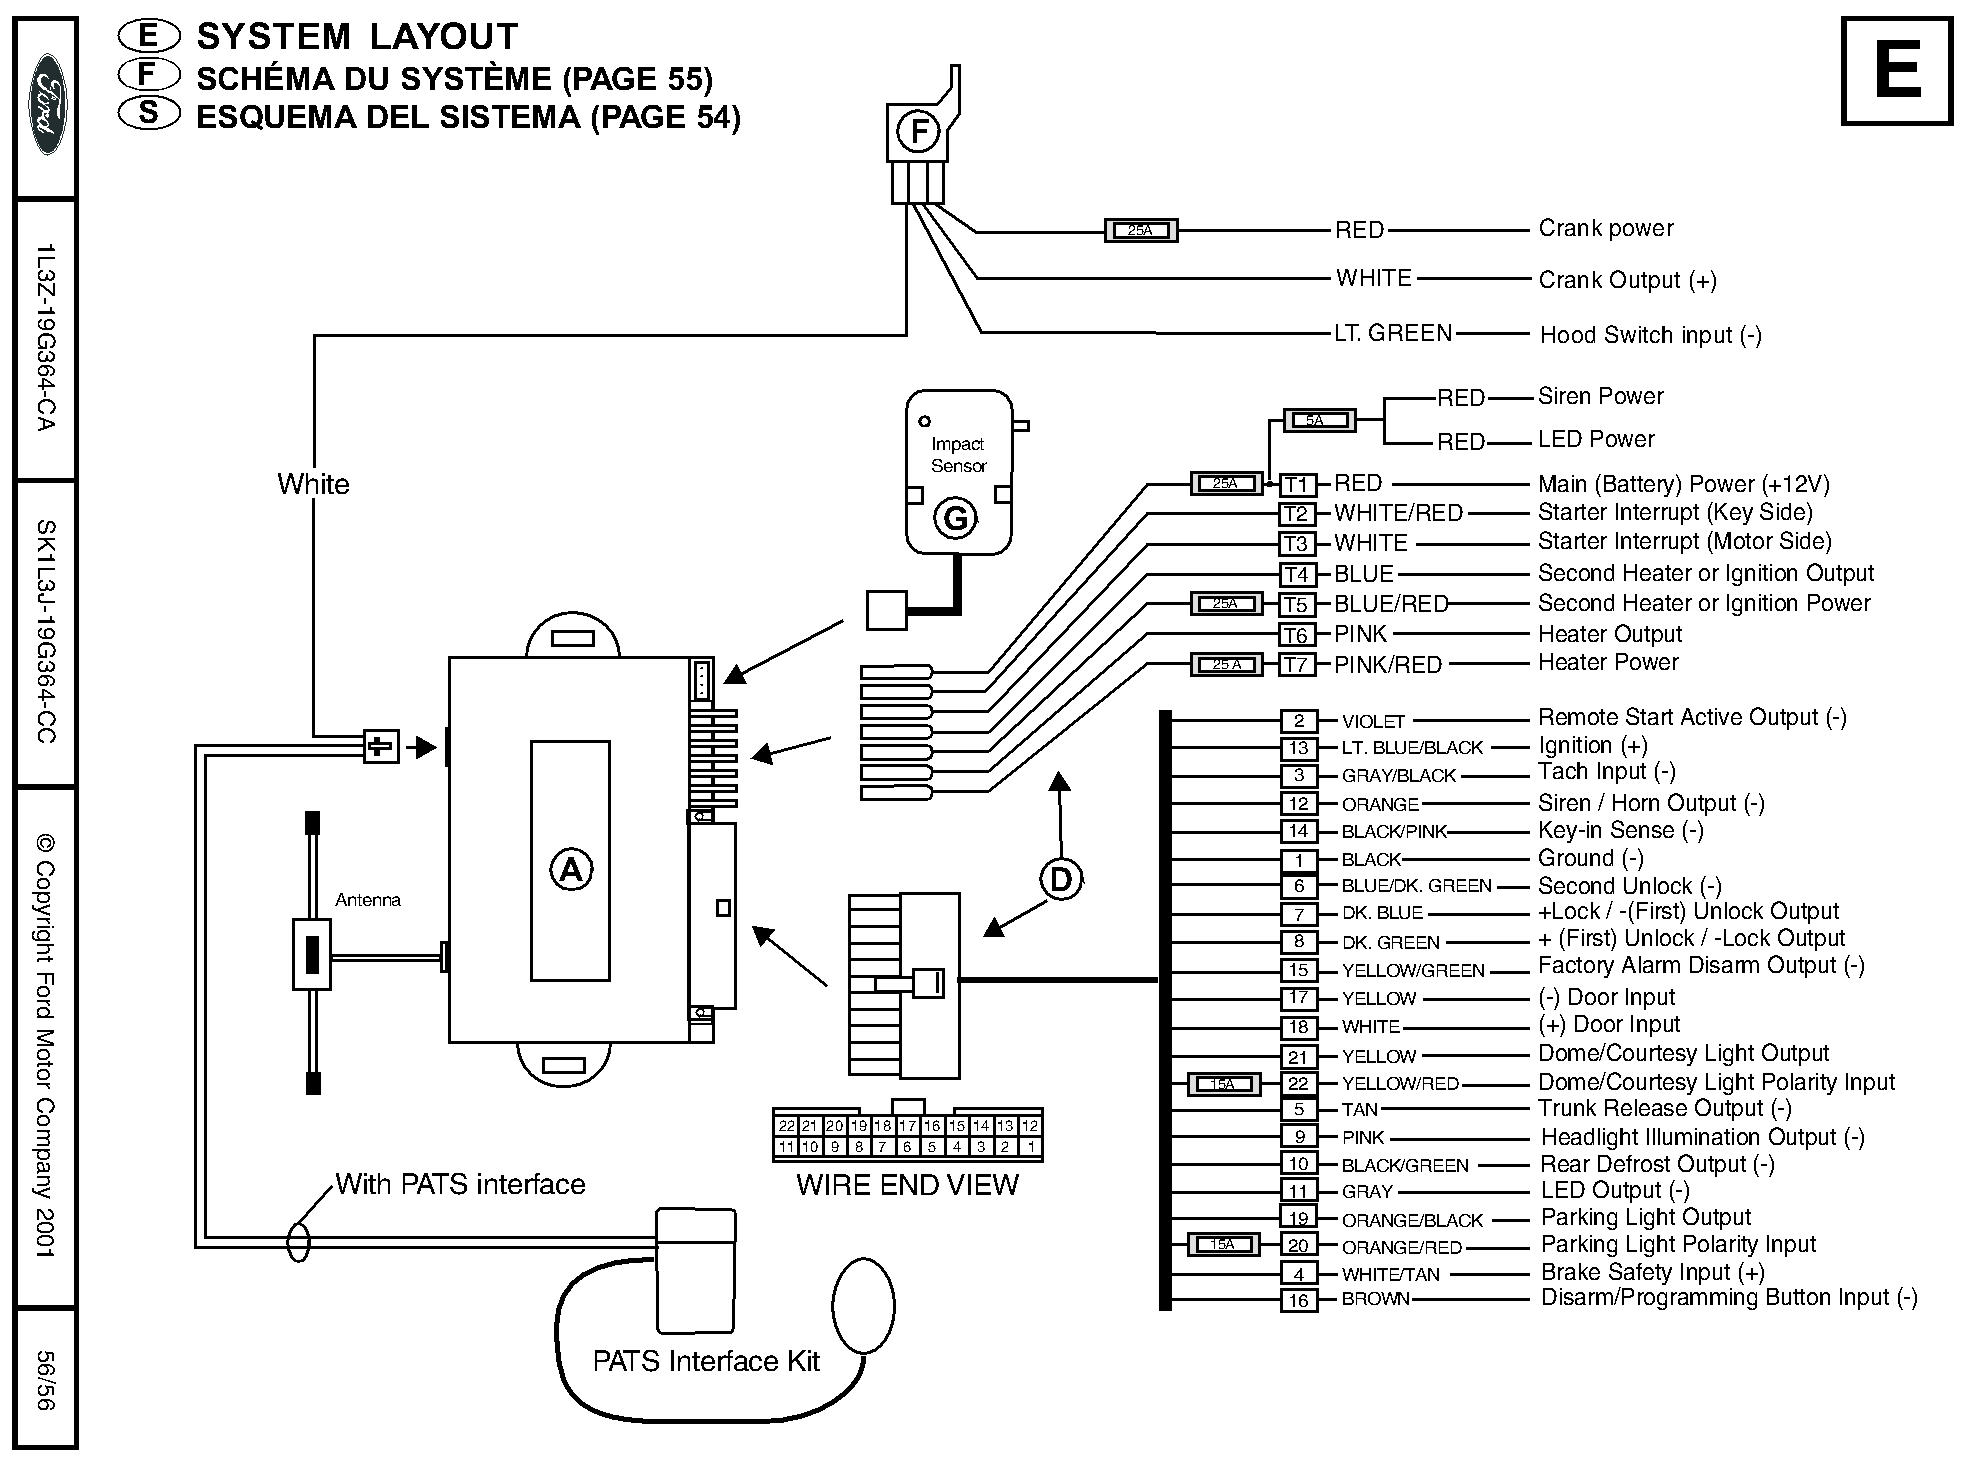 Viper Remote Start Wiring Diagram also Wiring Diagram For Avital Remote Start besides Hofco Car Alarm Wiring Diagram additionally Wiring Diagram For A 2005 Ford Explorer furthermore Security Gate Wiring Diagram. on bulldog security wiring diagrams